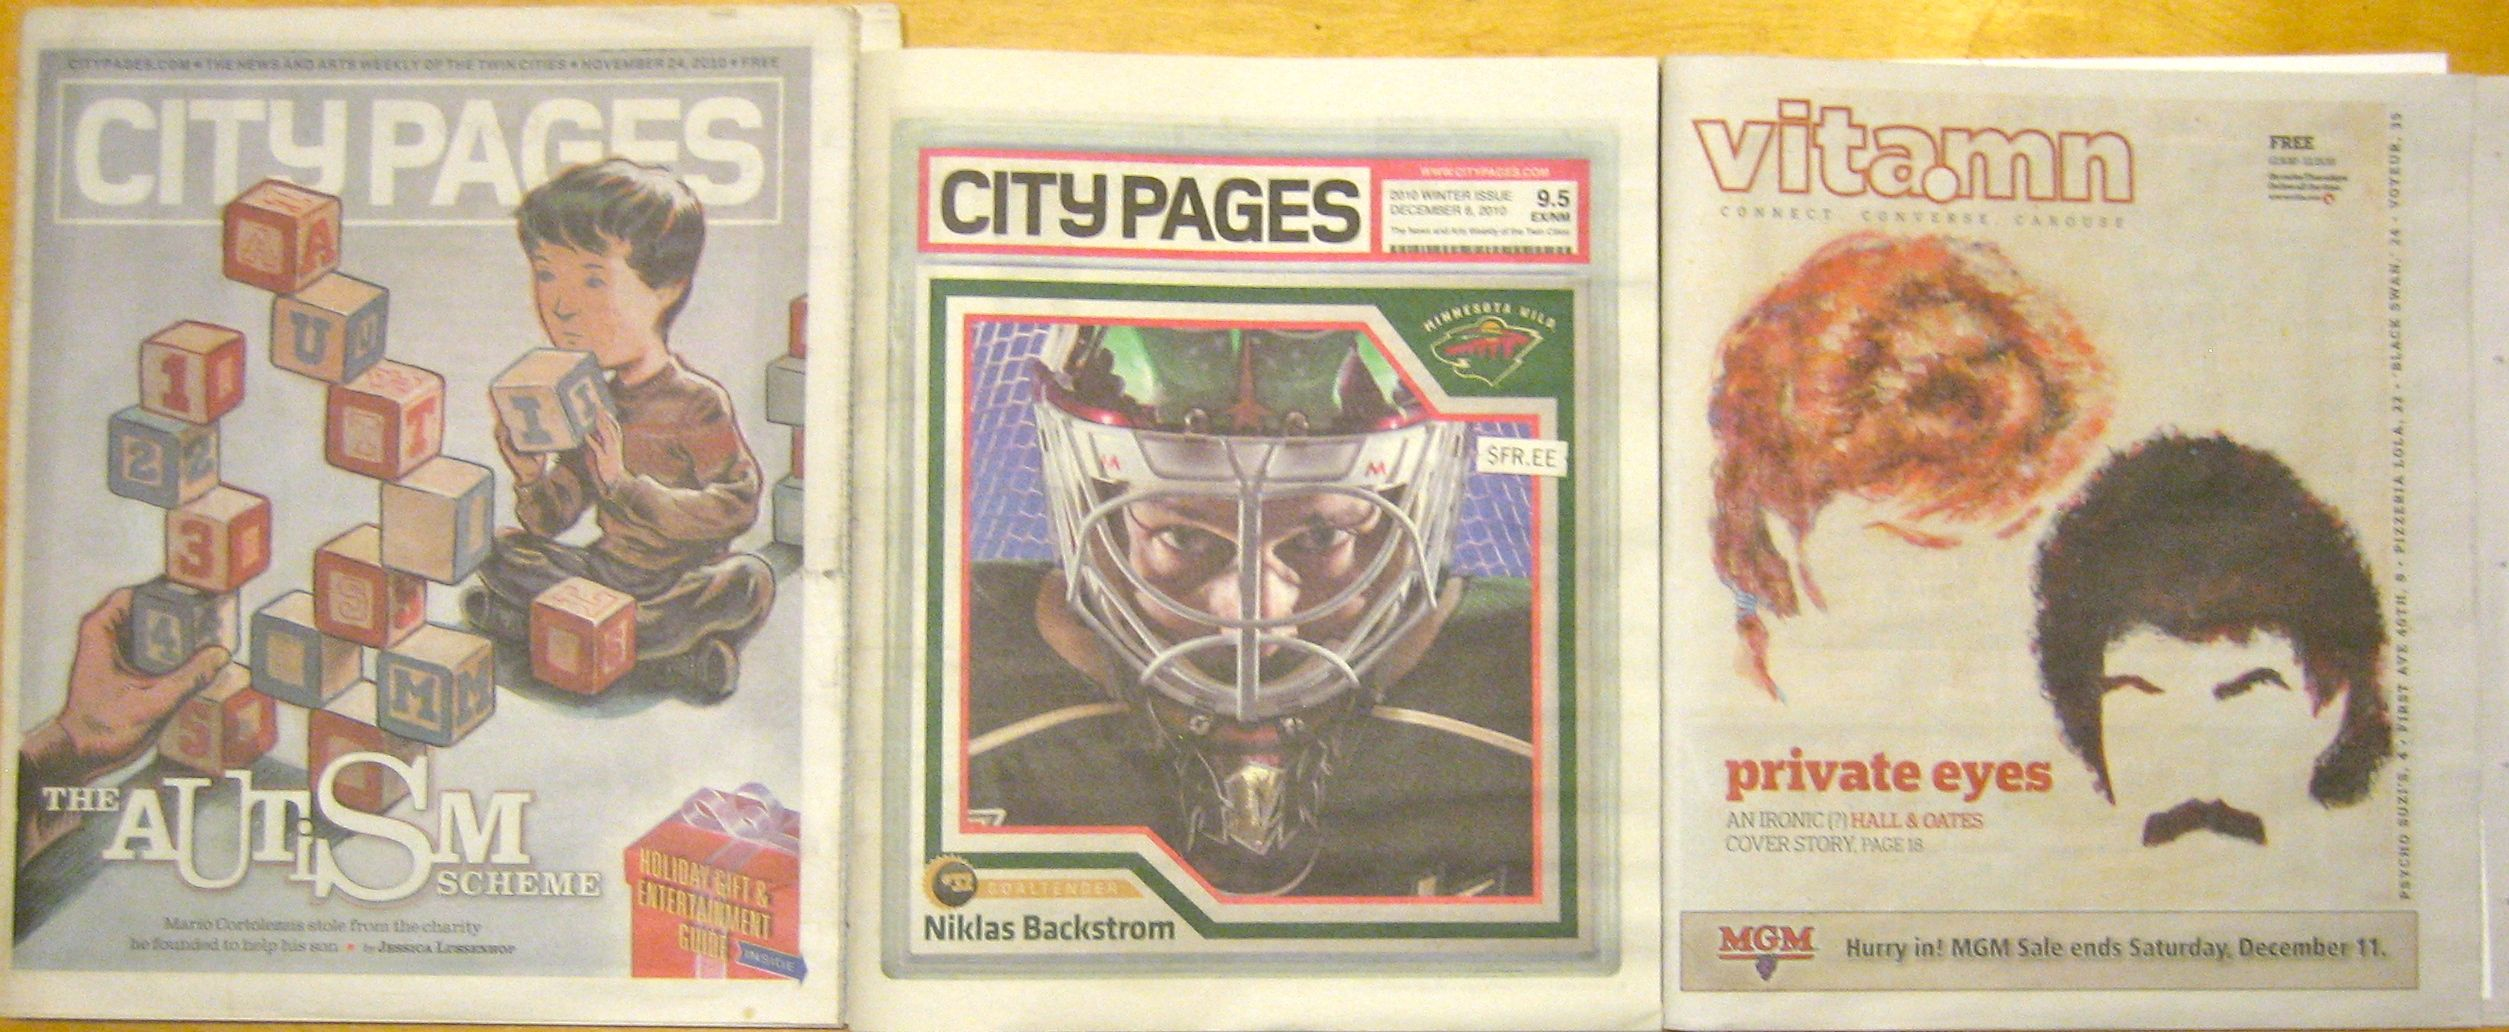 City Pages old and new, with Vita.mn